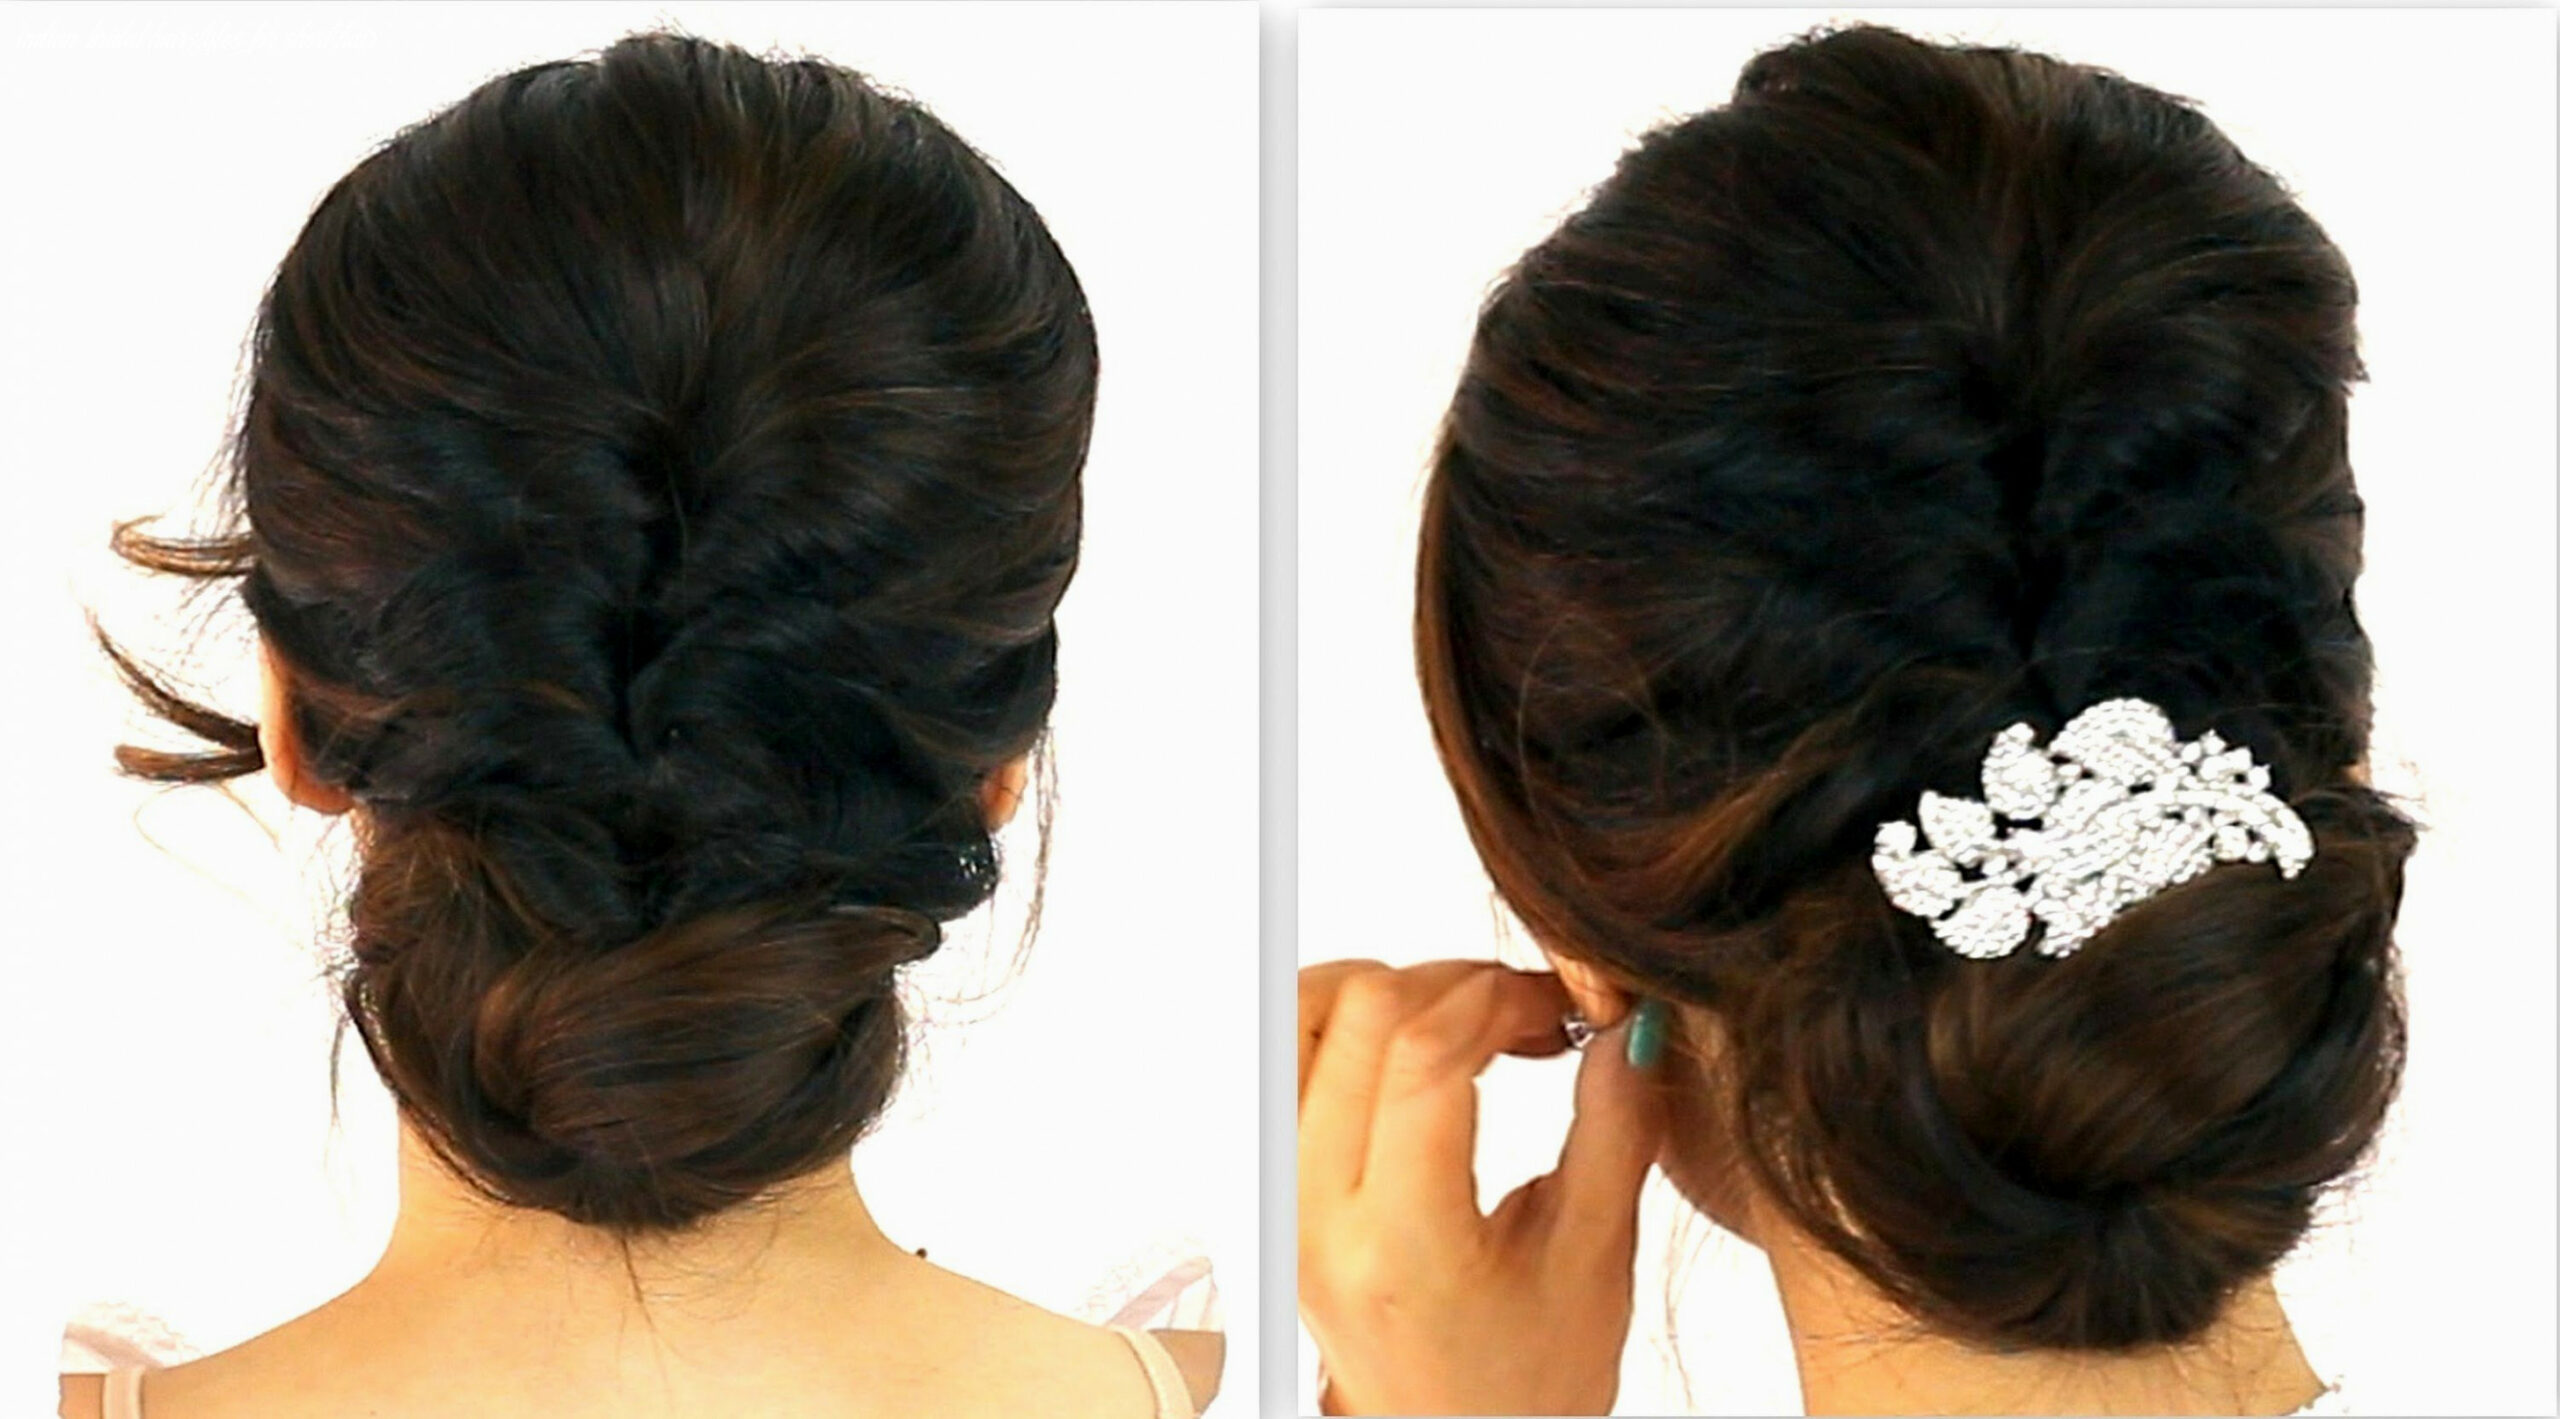 Indian wedding hairstyles for short hair google search | long